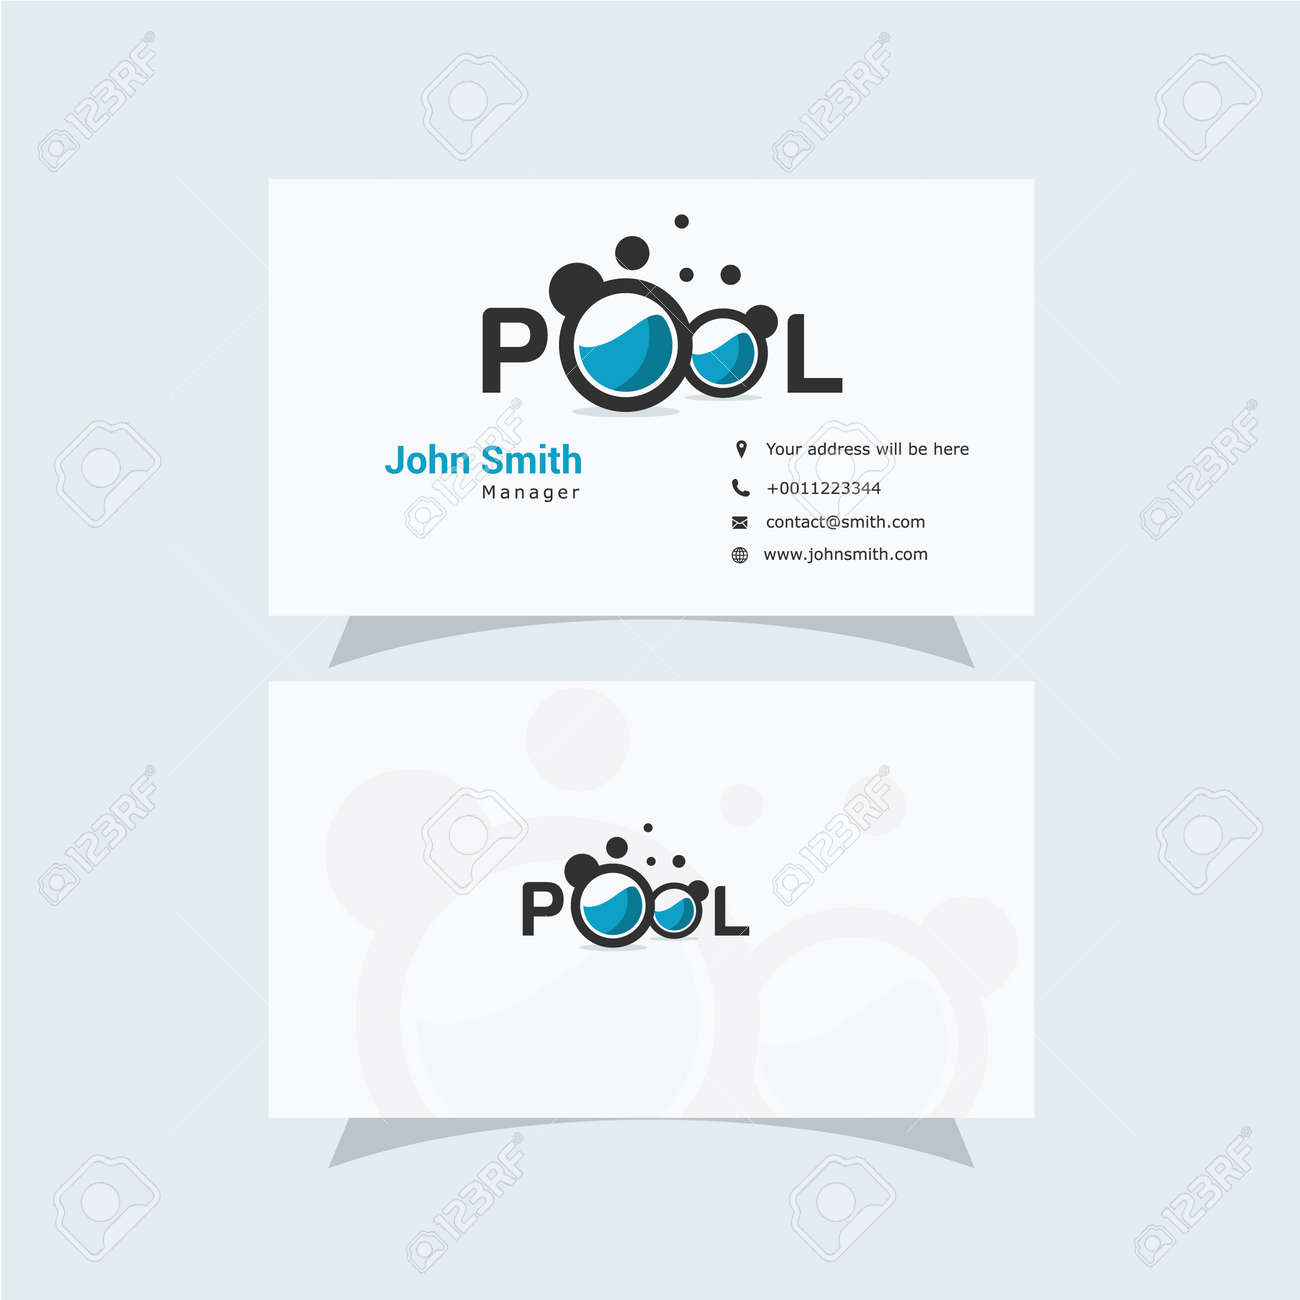 Business Card Design With Clean And Elegant Swimming Pool Logo Royalty Free Cliparts Vectors And Stock Illustration Image 134684769